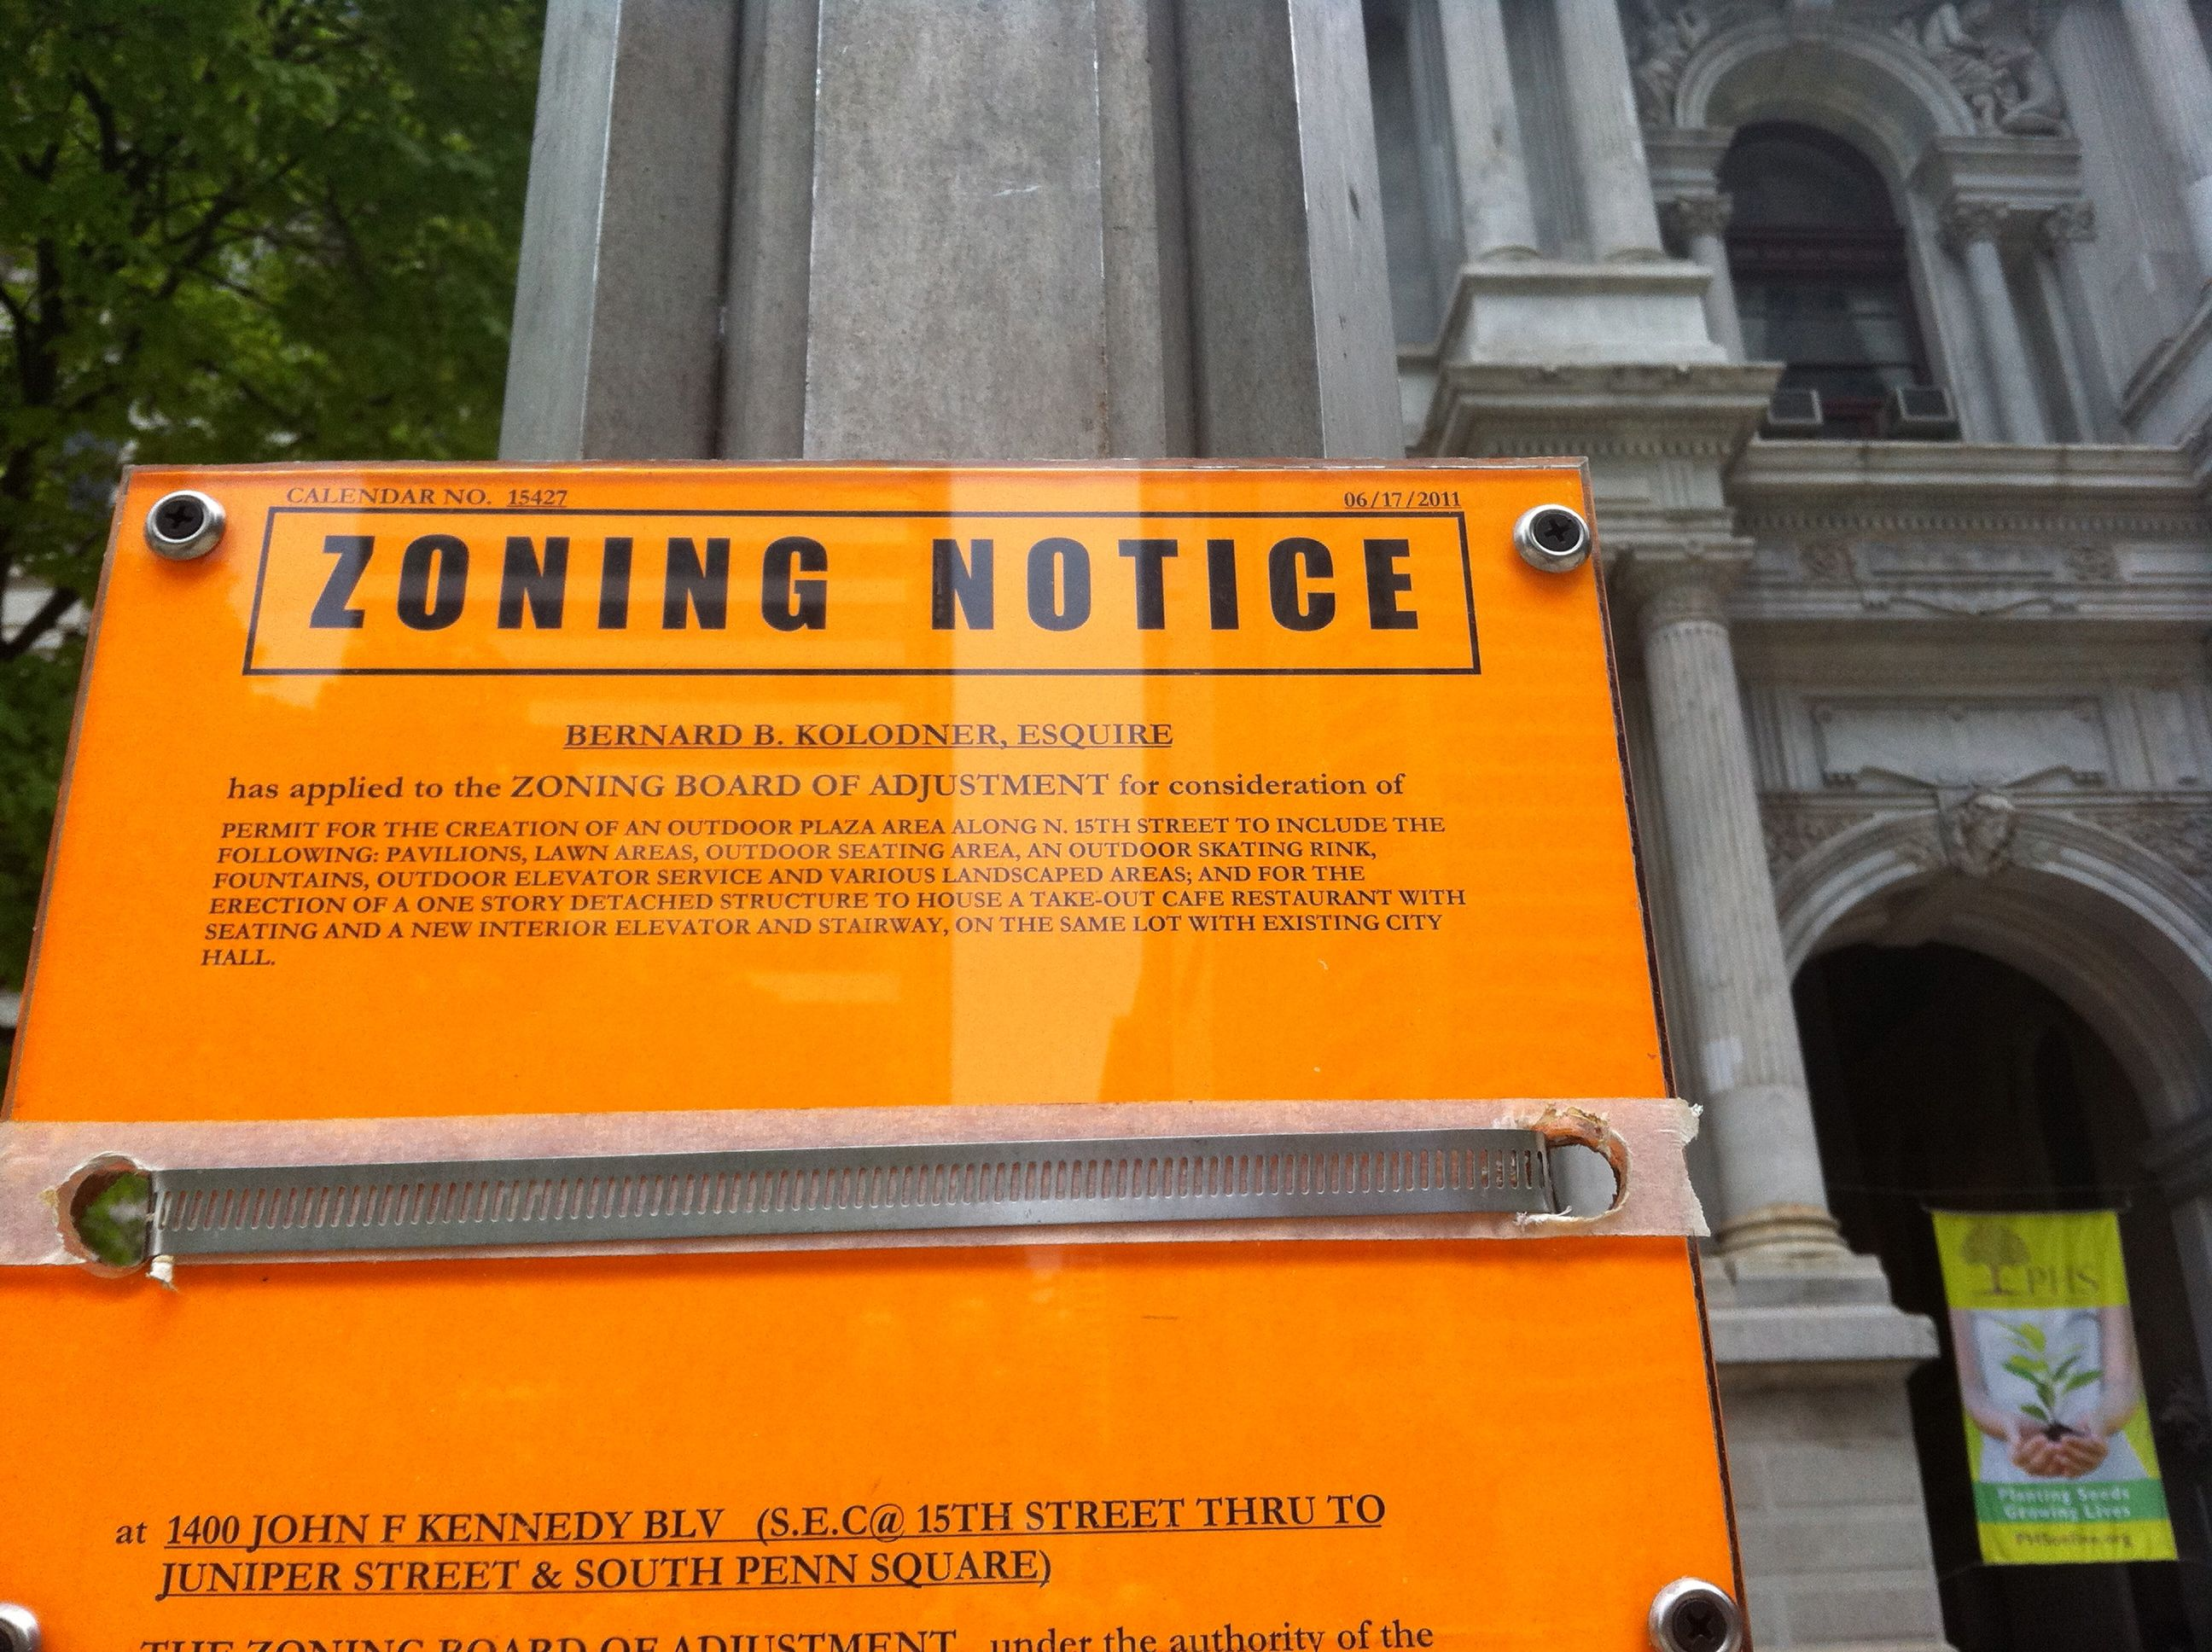 Zoning notice for Dilworth Plaza